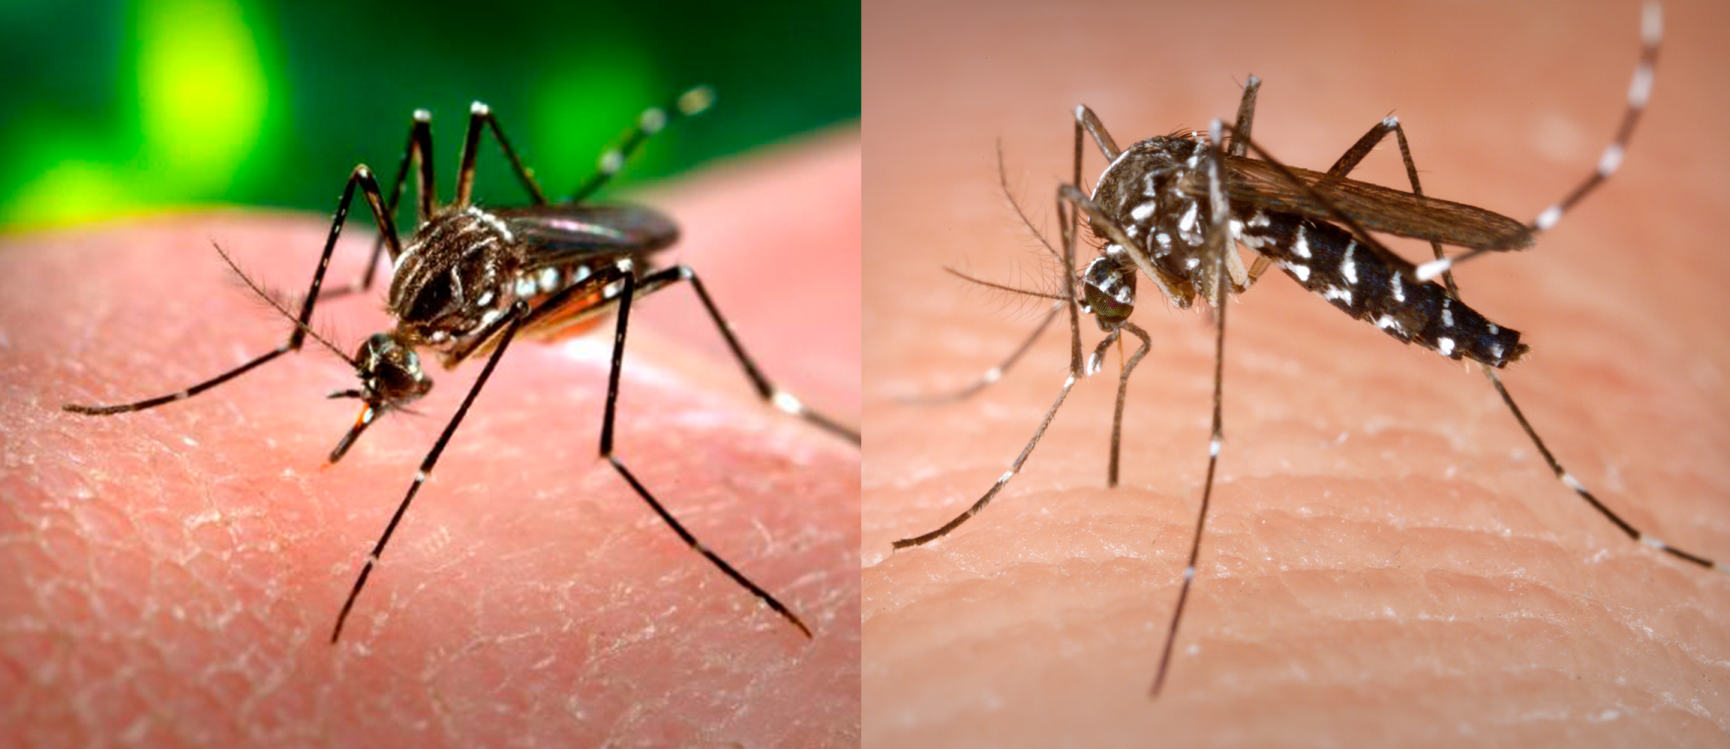 Visual identification of Ae. aegypti (left) can be difficult, as the mosquito resembles the closely related and also dangerous Ae. albopictus (right). Because the ranges of these mosquitoes are shifting with climate change, quickly identifying mosquitoes will help understand what areas are under threat from infectious disease.